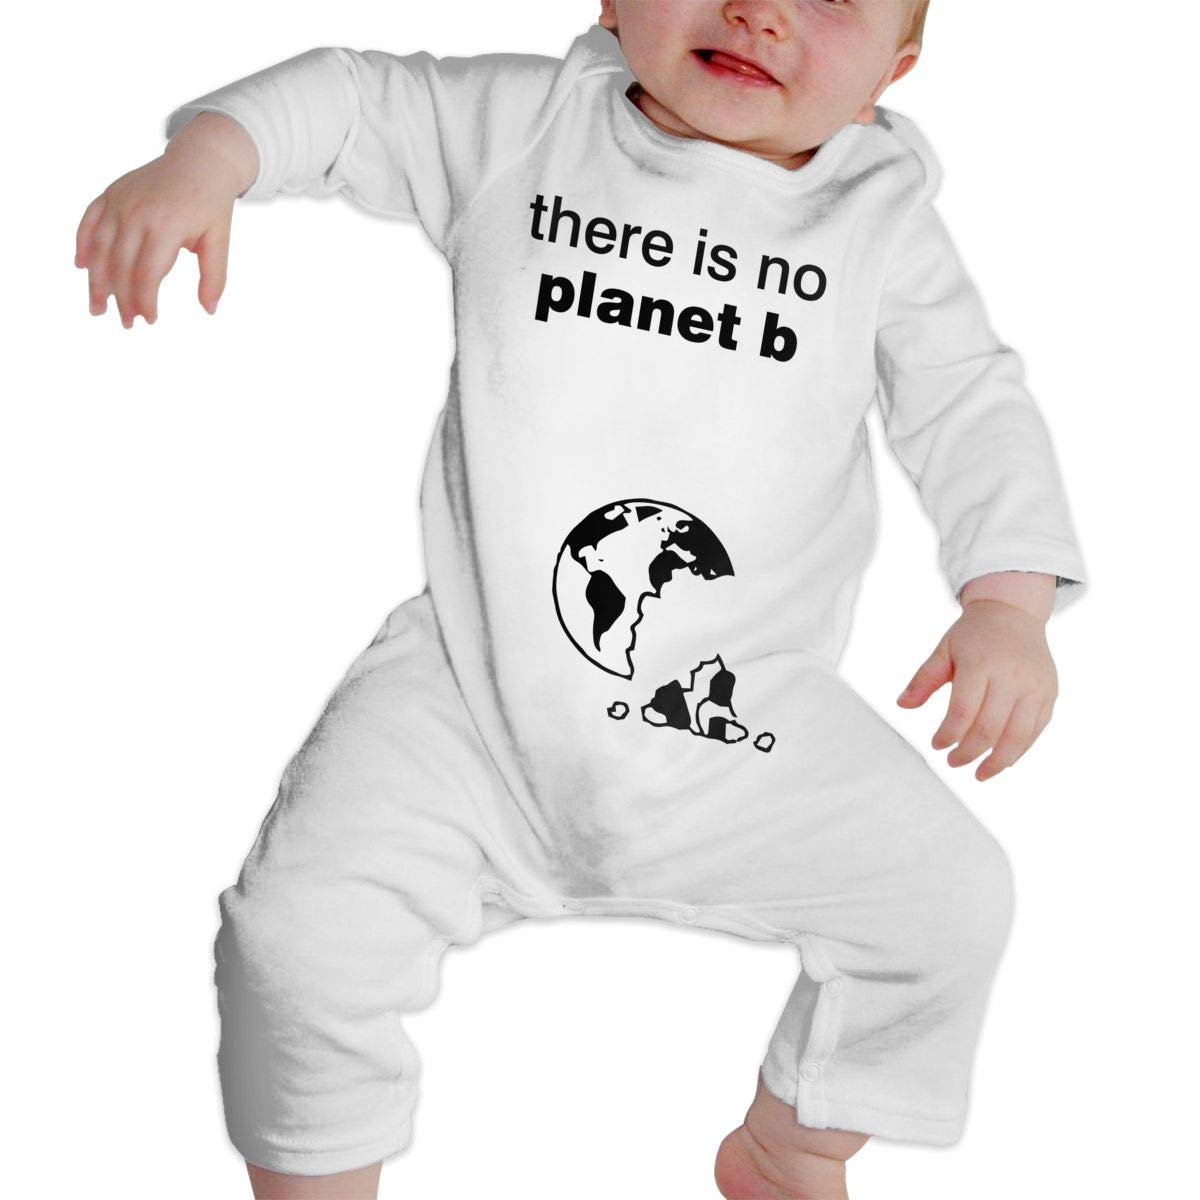 Infant Baby Boys Girls Cotton Long Sleeve There is No Planet B Earth Climb Jumpsuit Funny Printed Romper Clothes